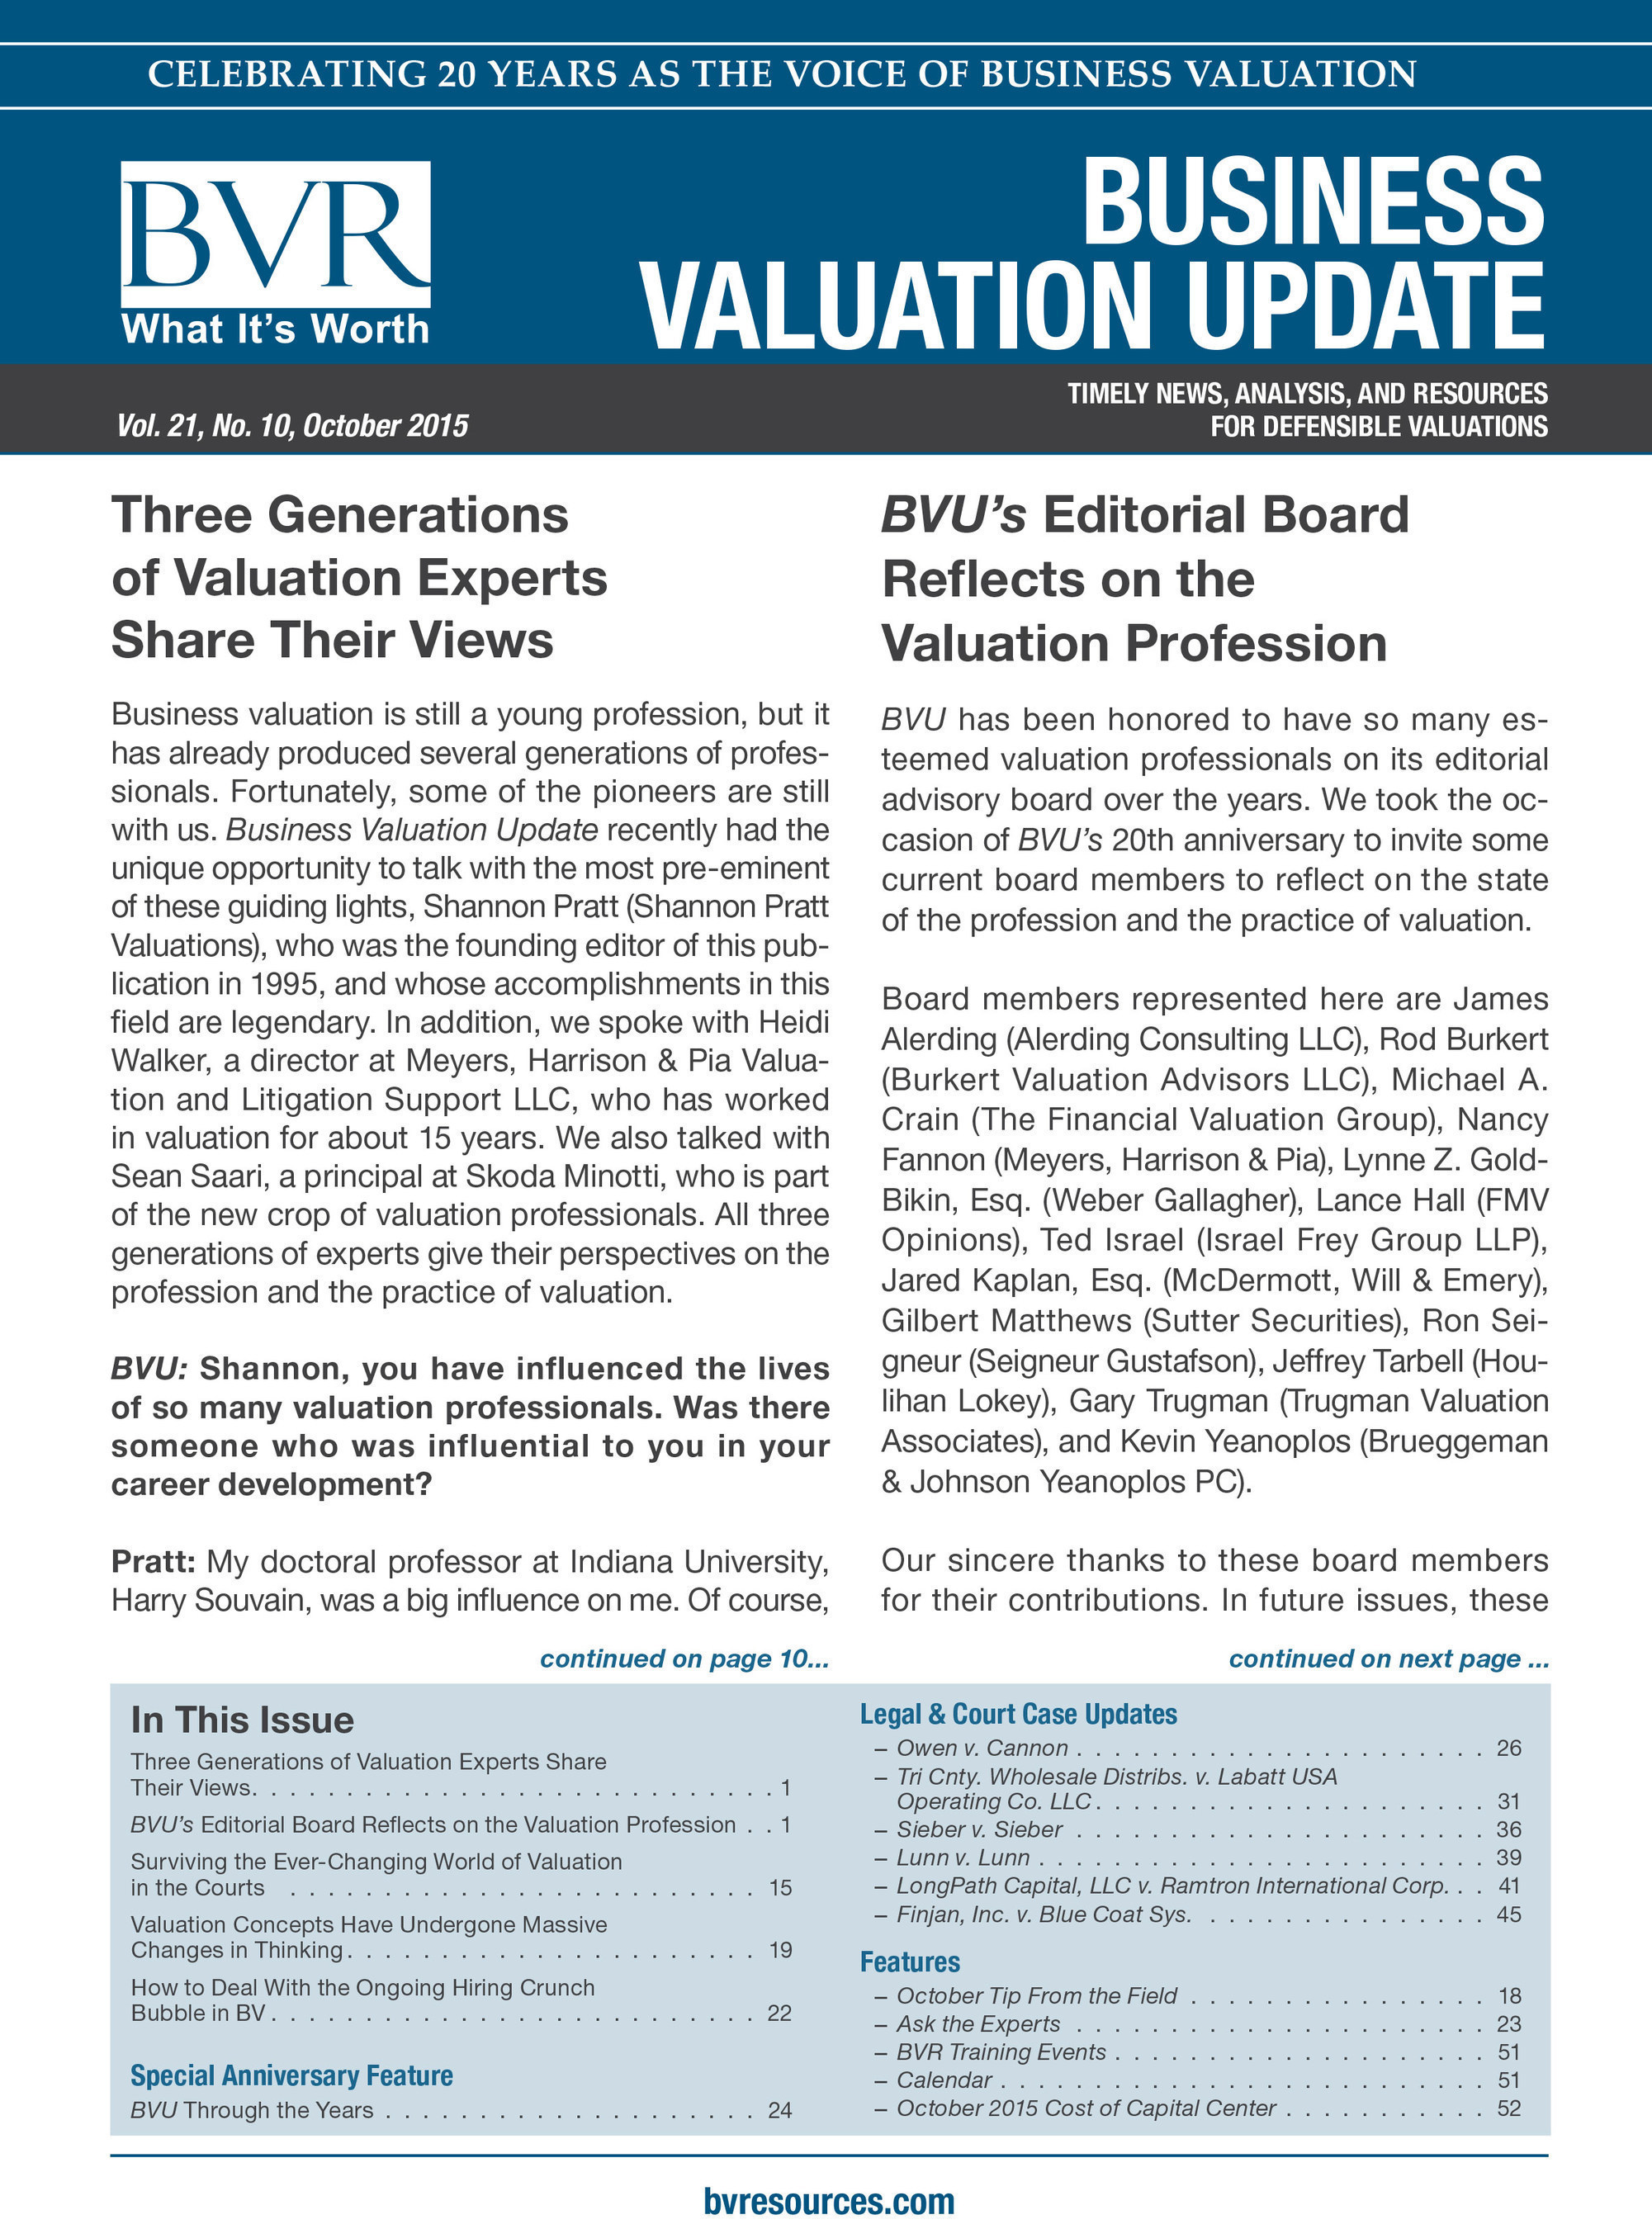 Business Valuation Update journal celebrates 20 year anniversary with perspectives from three generations of valuation professionals on the past, present, and future of t